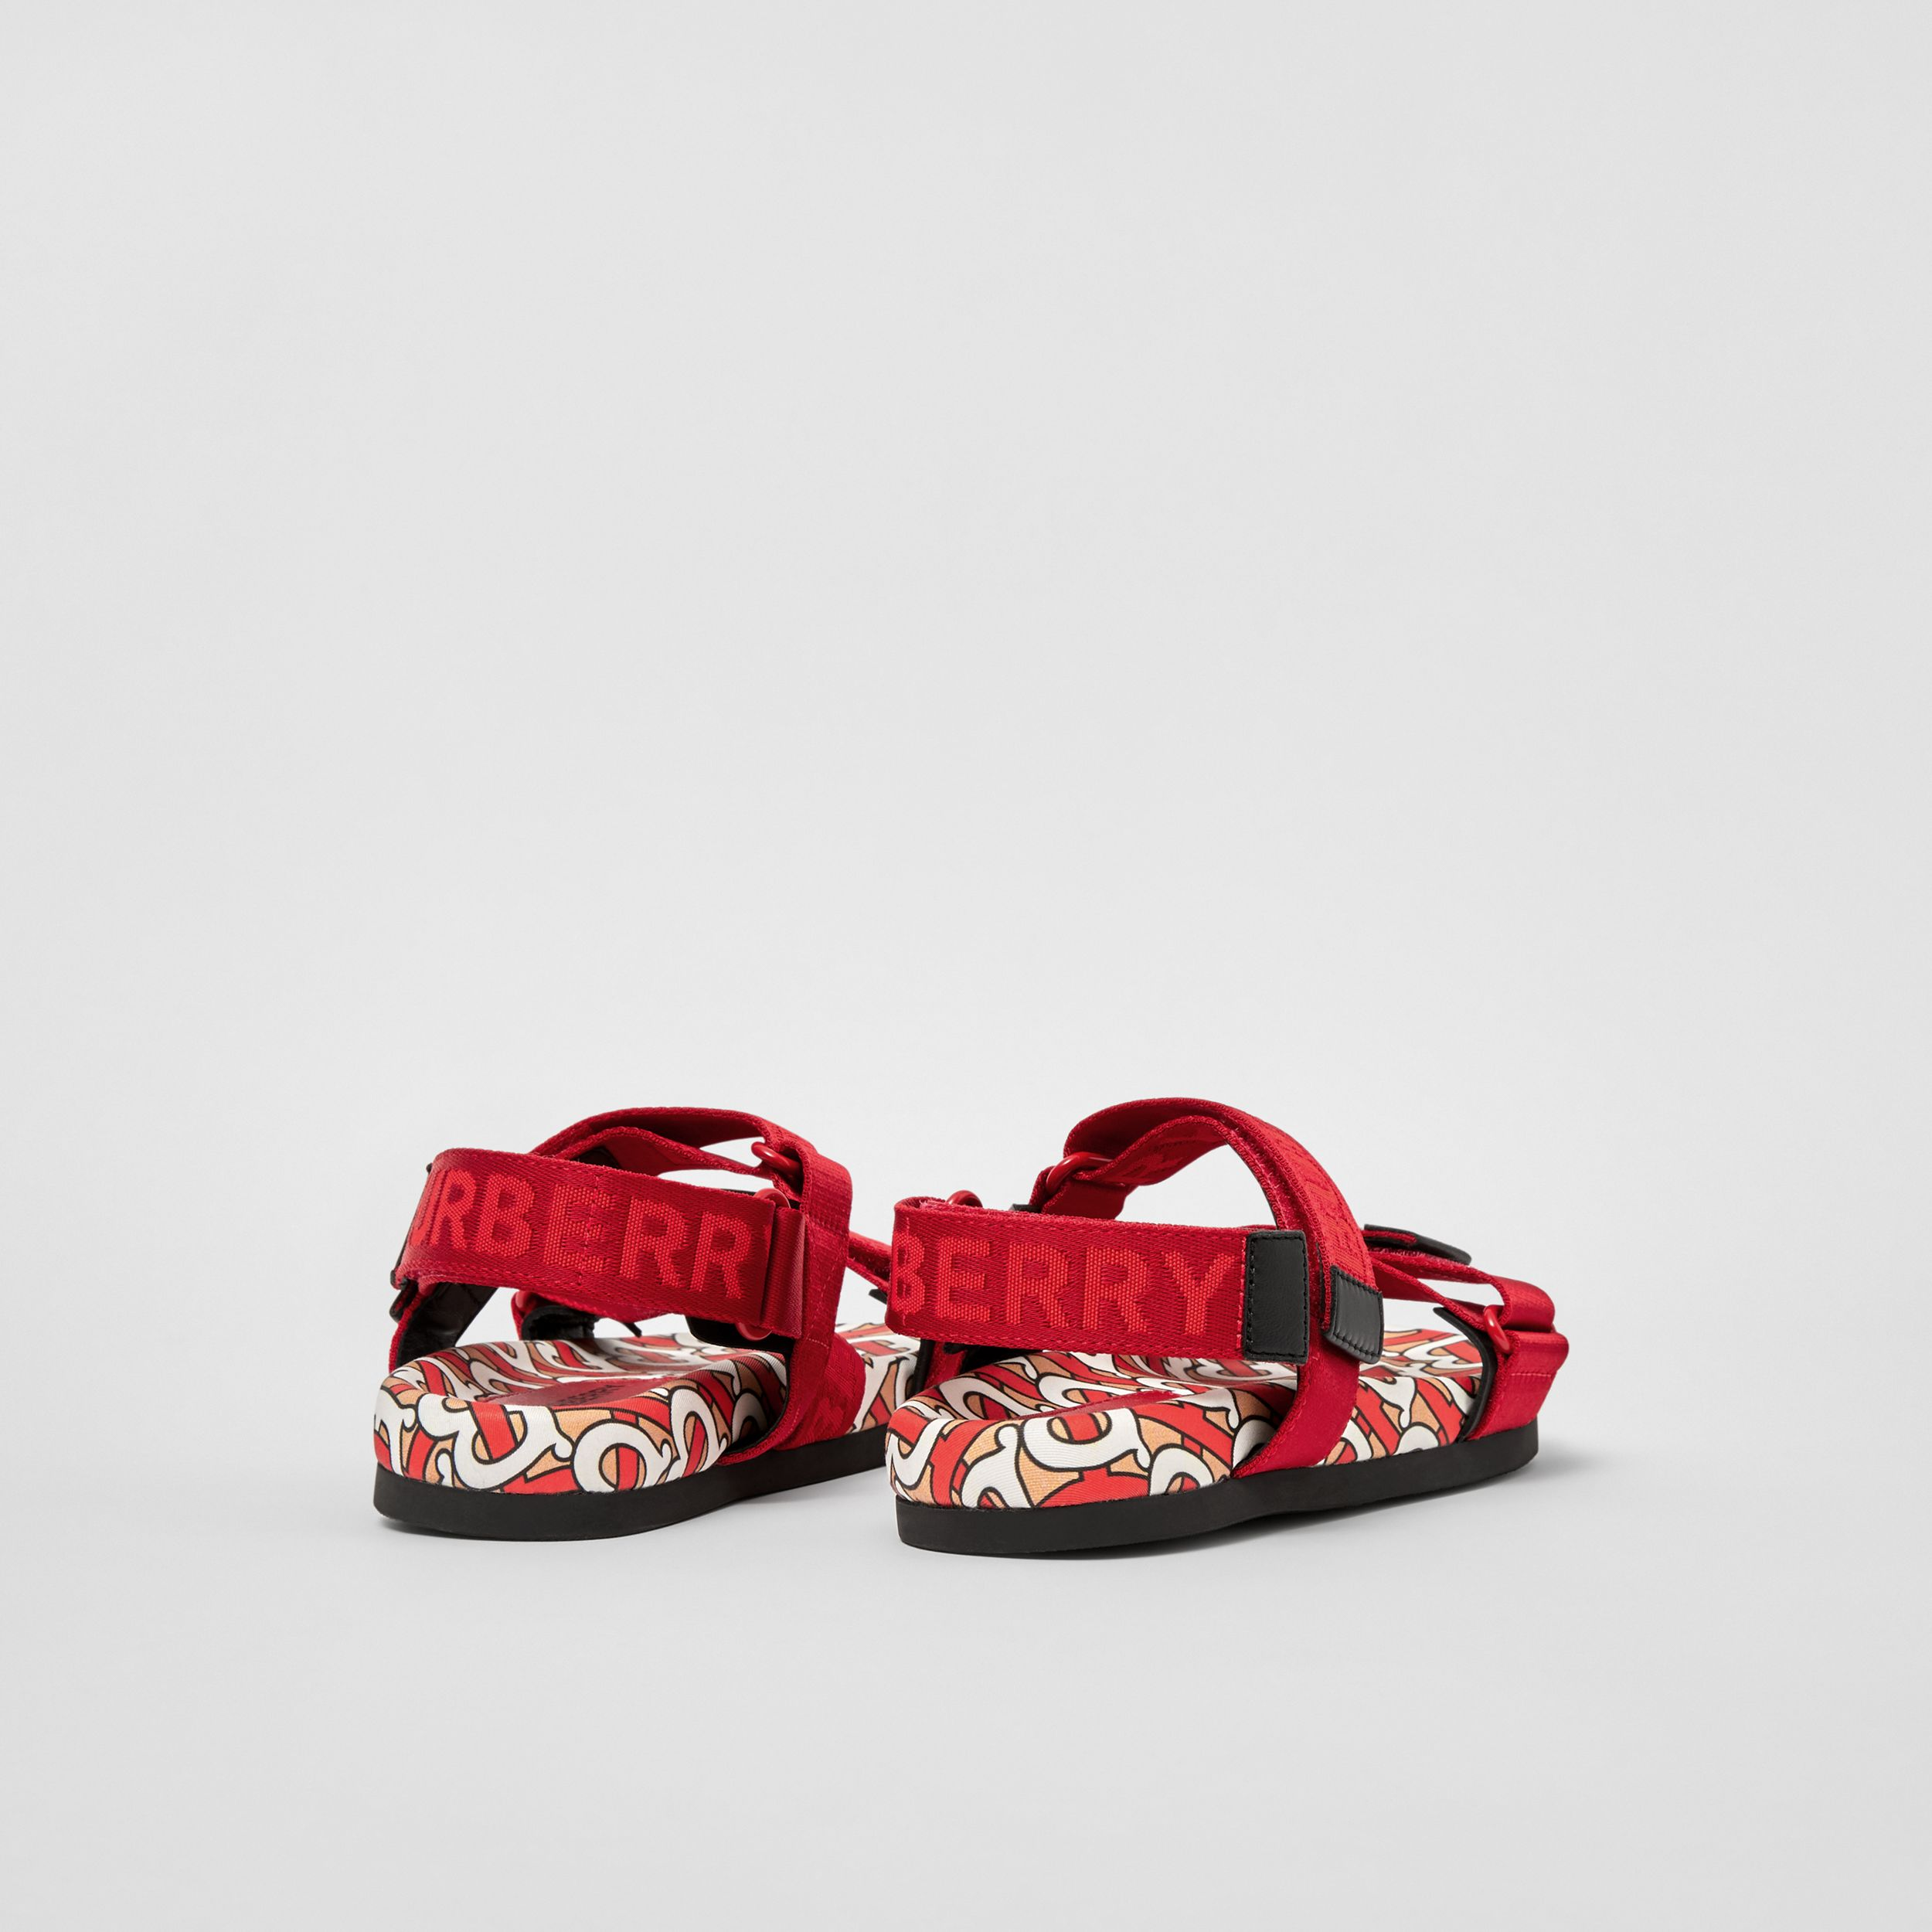 Monogram Print Cotton Gabardine Sandals in Bright Red - Children | Burberry - 3